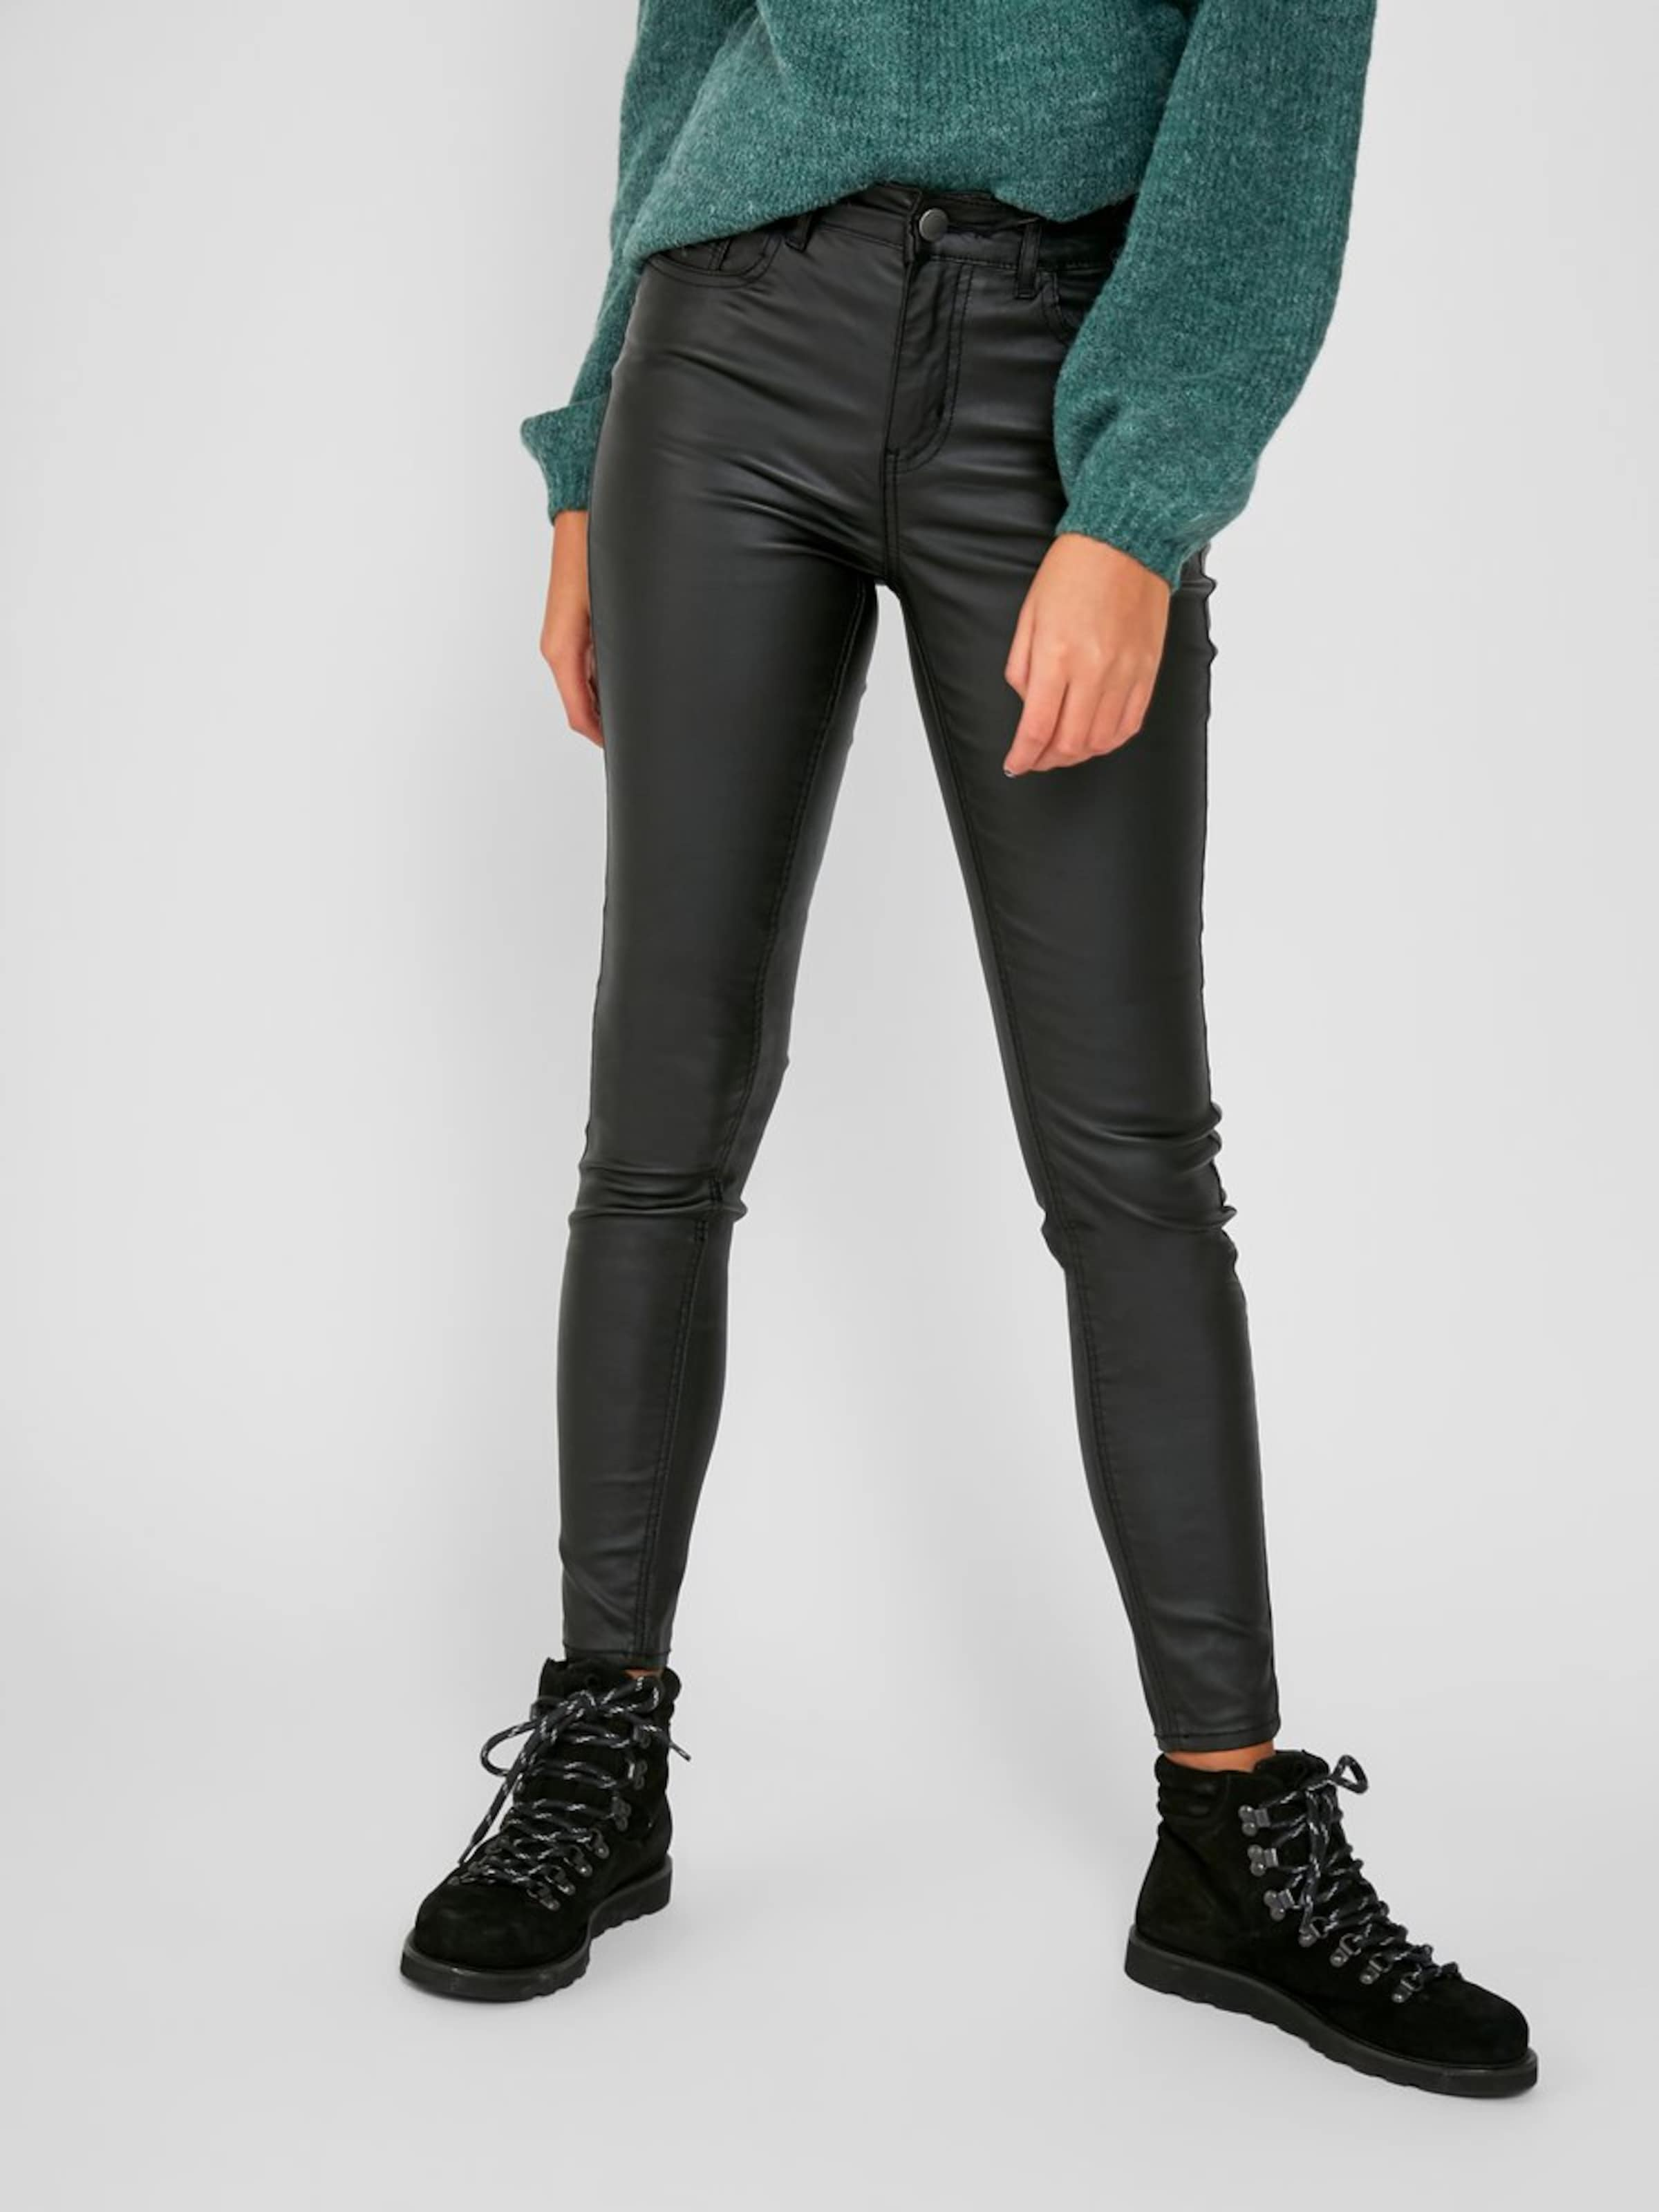 Jeggings In In Pieces Zwart In Pieces Zwart Jeggings Pieces Jeggings Pieces Zwart 6b7yvfYg